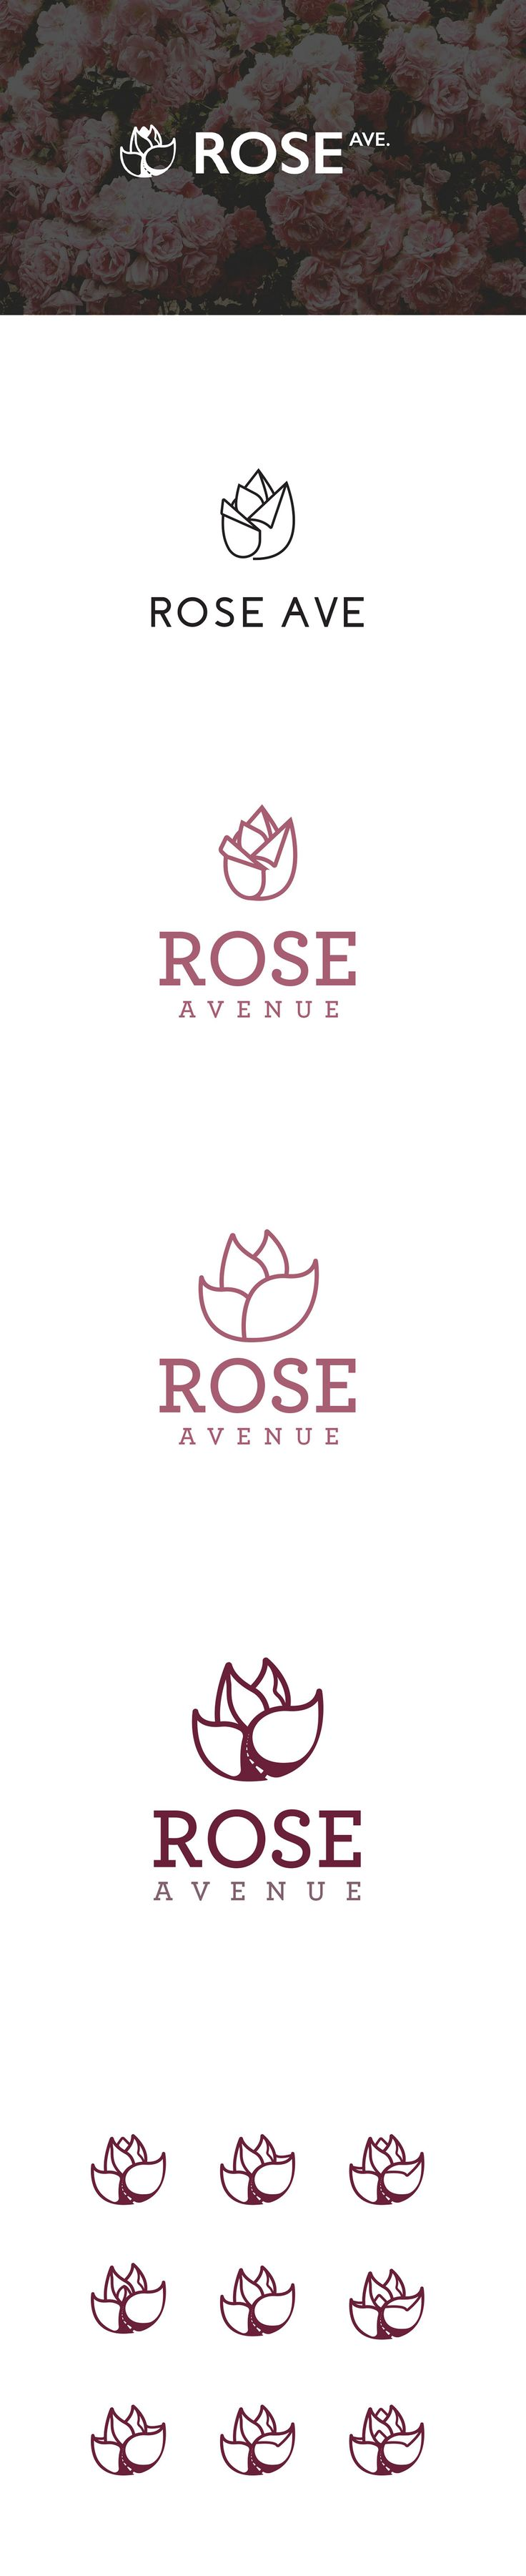 Rose Ave Theme Logo Concepts on Behance